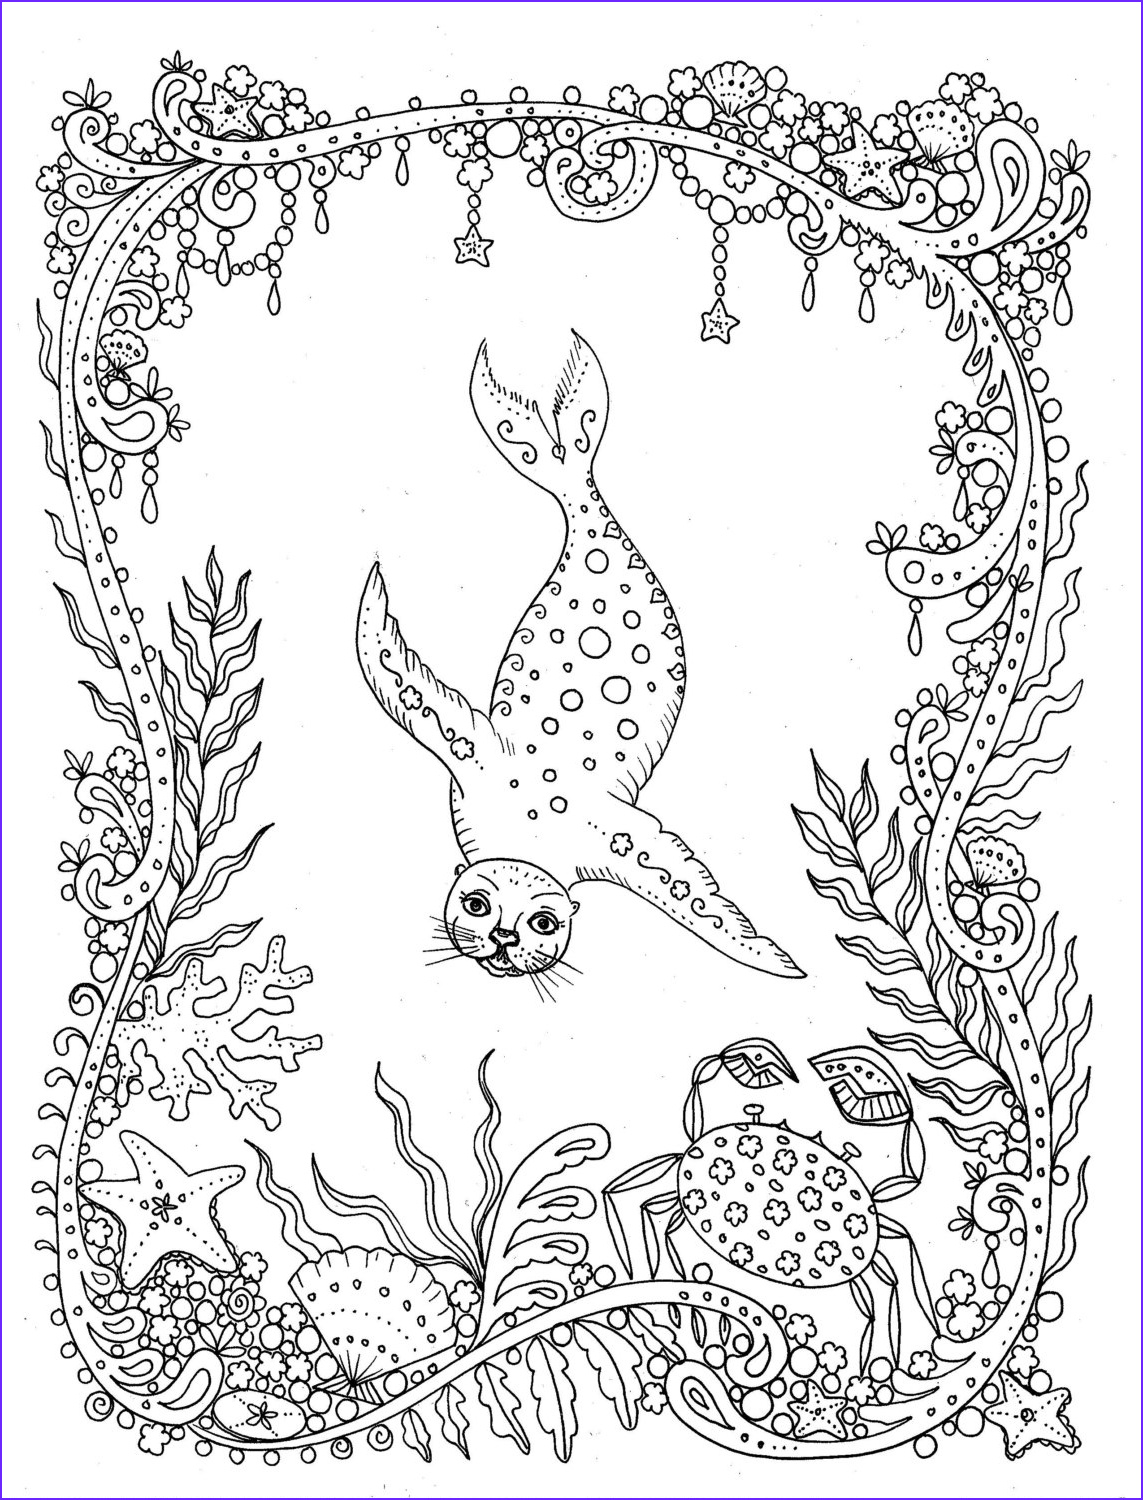 Fantasy Adult Coloring Pages Best Of Photos Download Coloring Page Fantasy Seal You Be the Artist